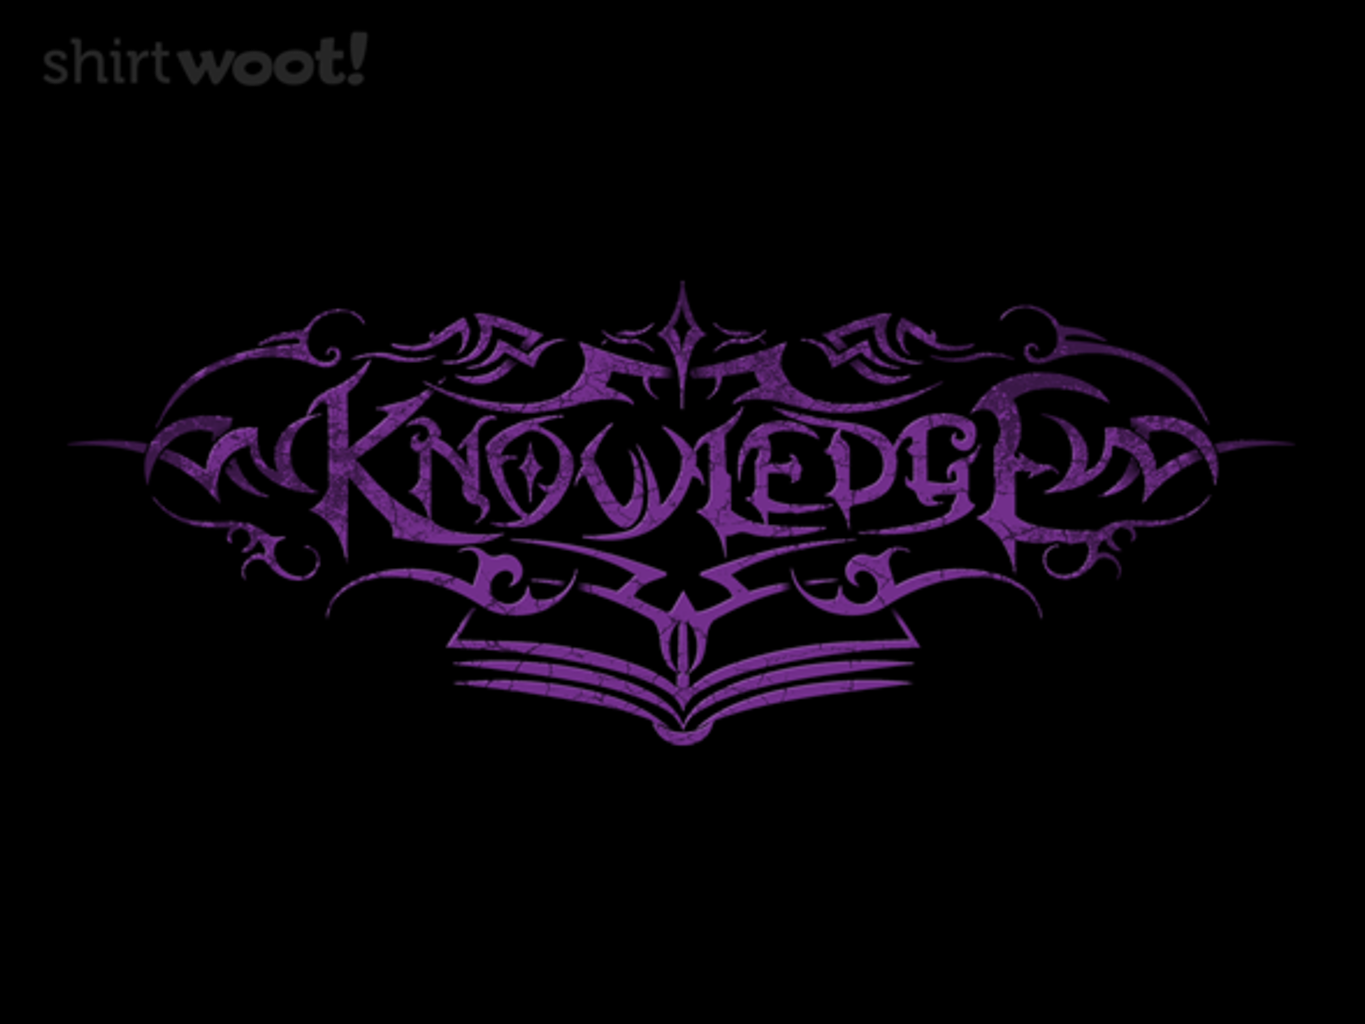 Woot!: Tribal Knowledge - $15.00 + Free shipping